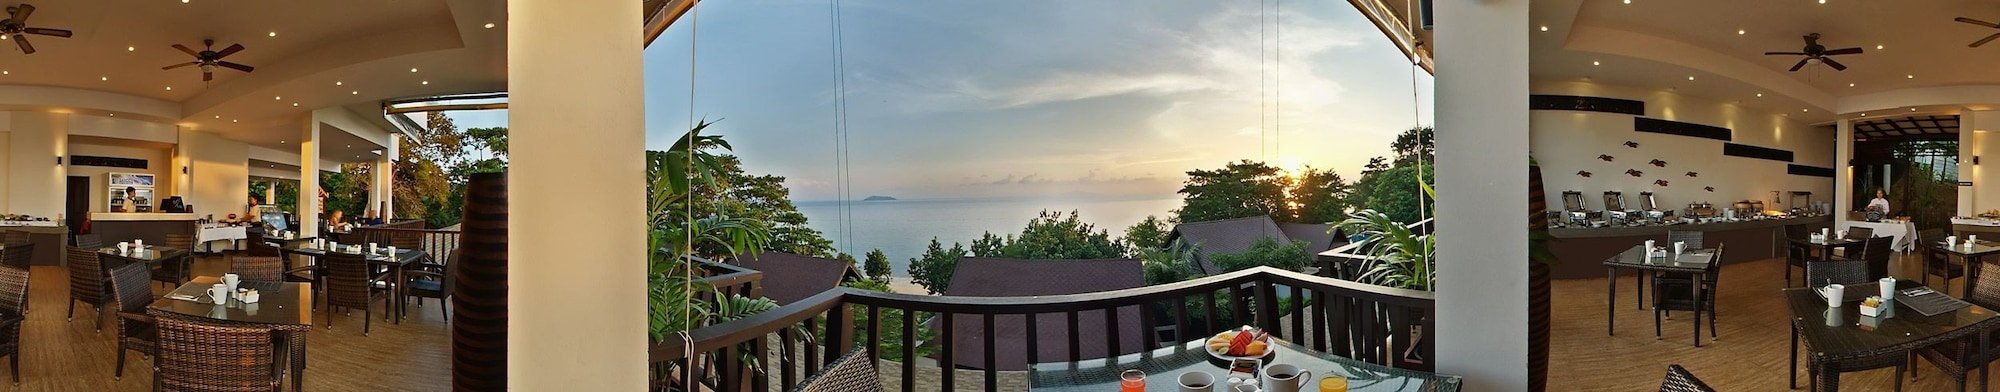 Holiday Inn Resort Phi Phi Island, Muang Krabi